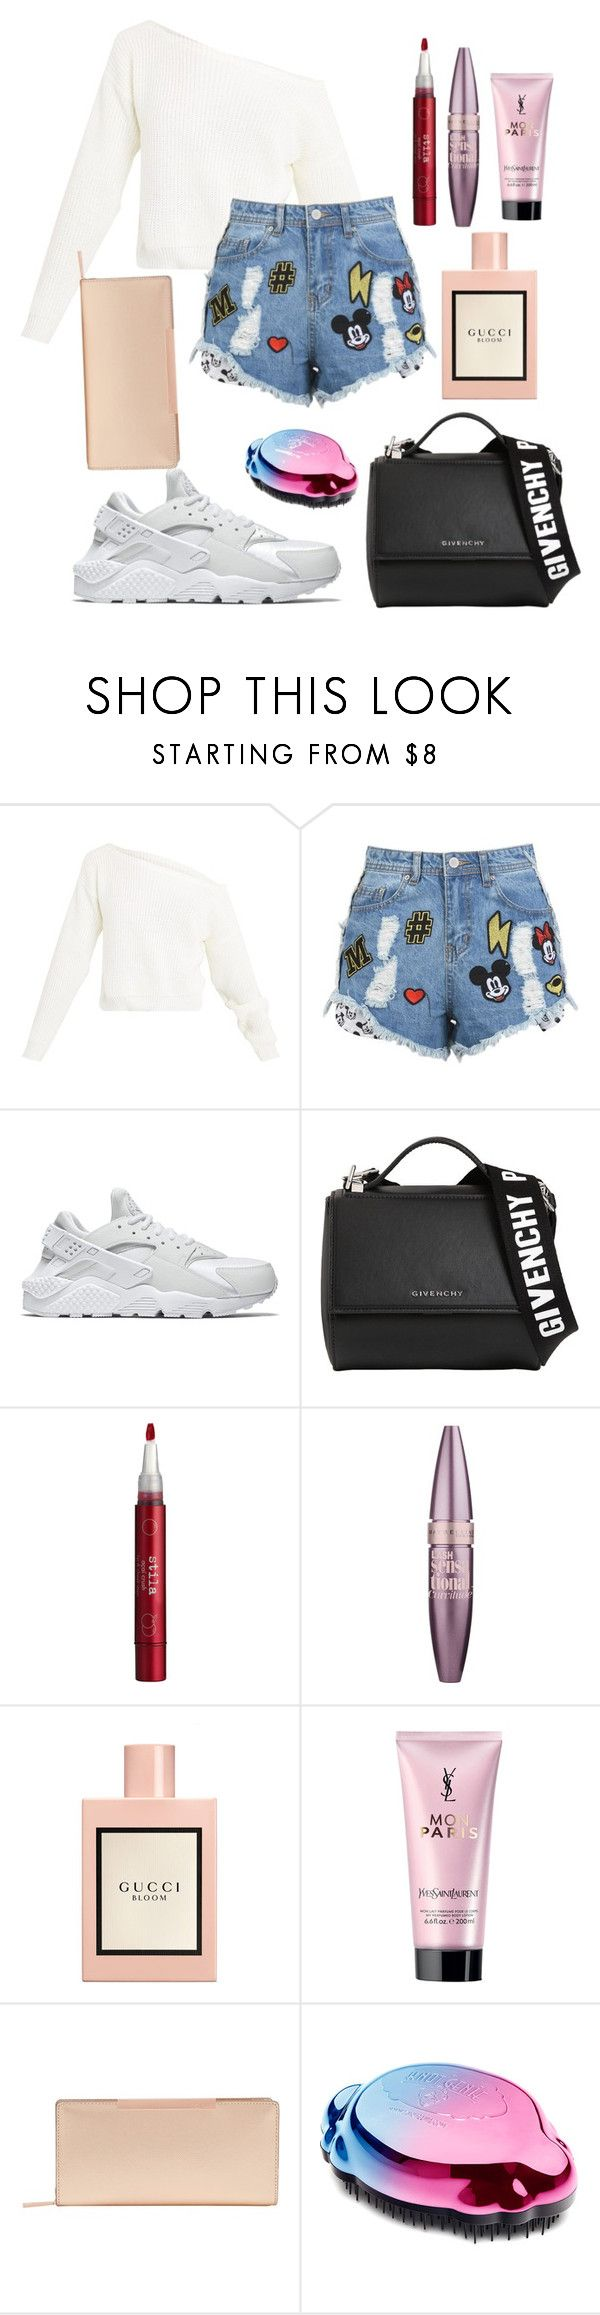 """Untitled #108"" by rahmadita14 on Polyvore featuring Disney Stars Studios, NIKE, Givenchy, Stila, Maybelline, Gucci, Yves Saint Laurent and Ted Baker"